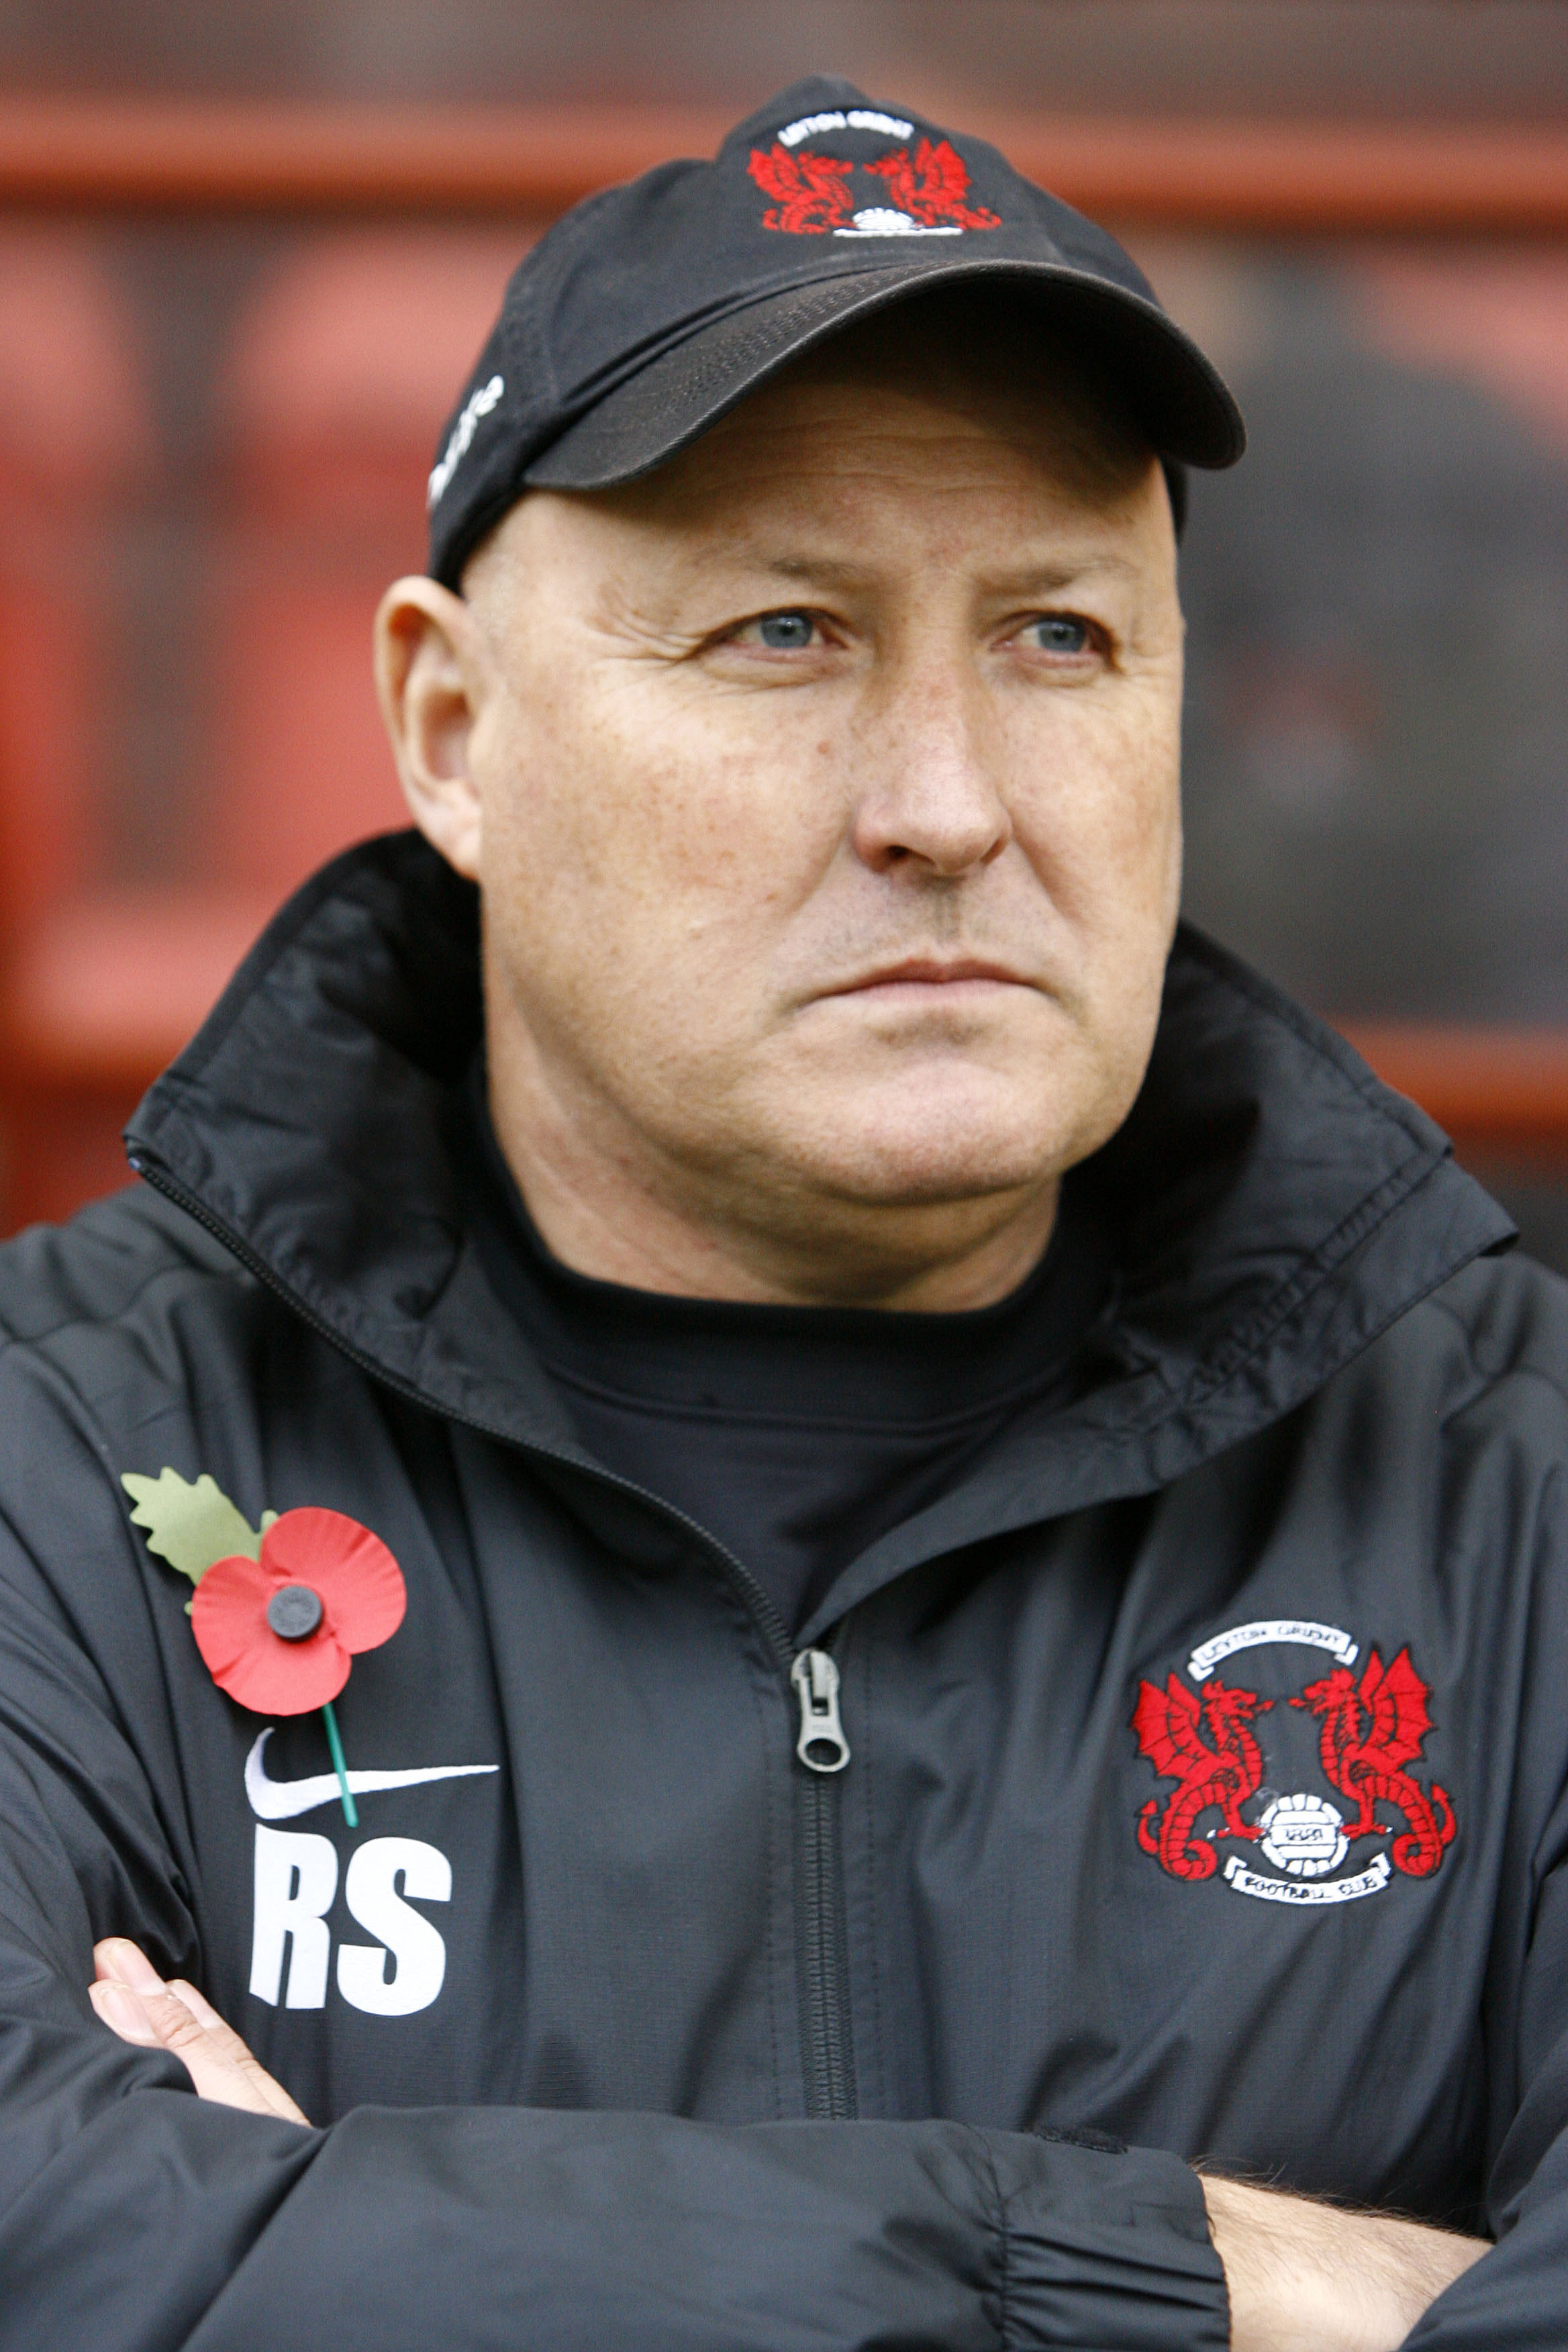 Russell Slade's side could not hold onto their lead: Action Images